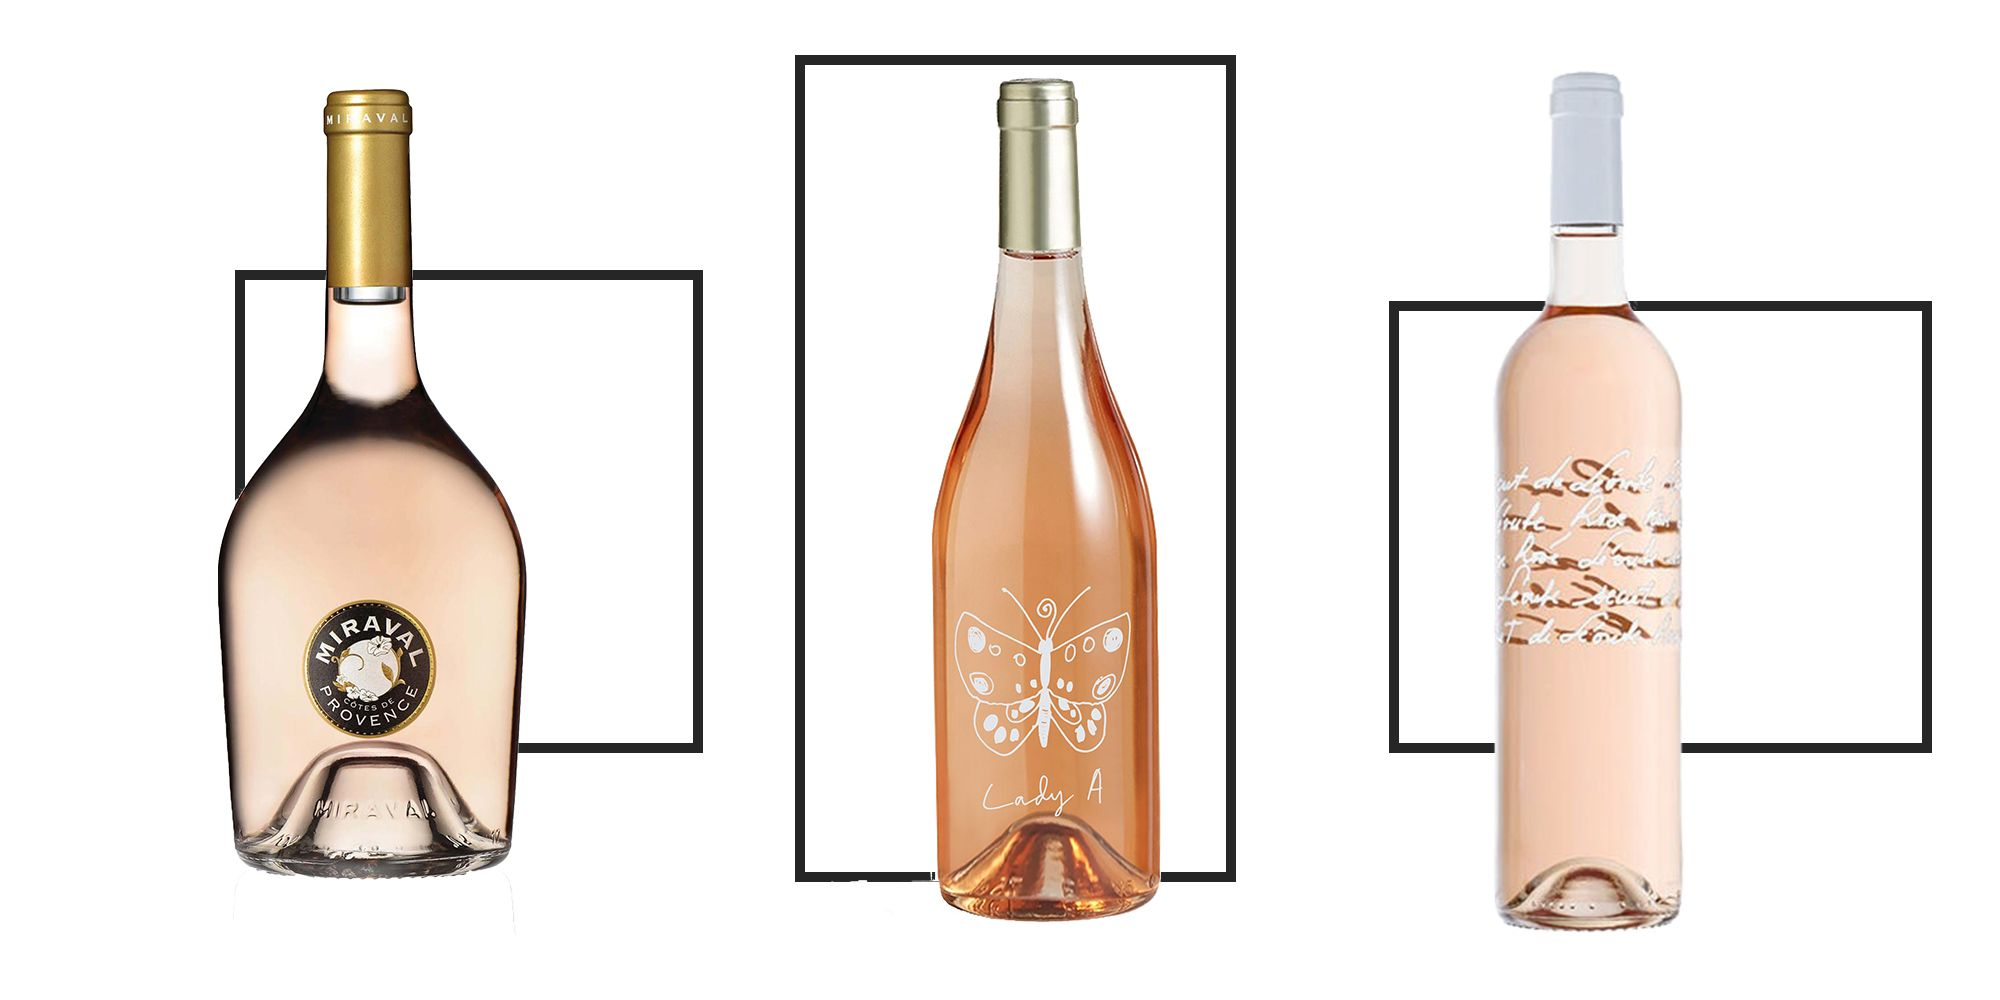 10 of the best luxury Côtes de Provence rosé wines for summer